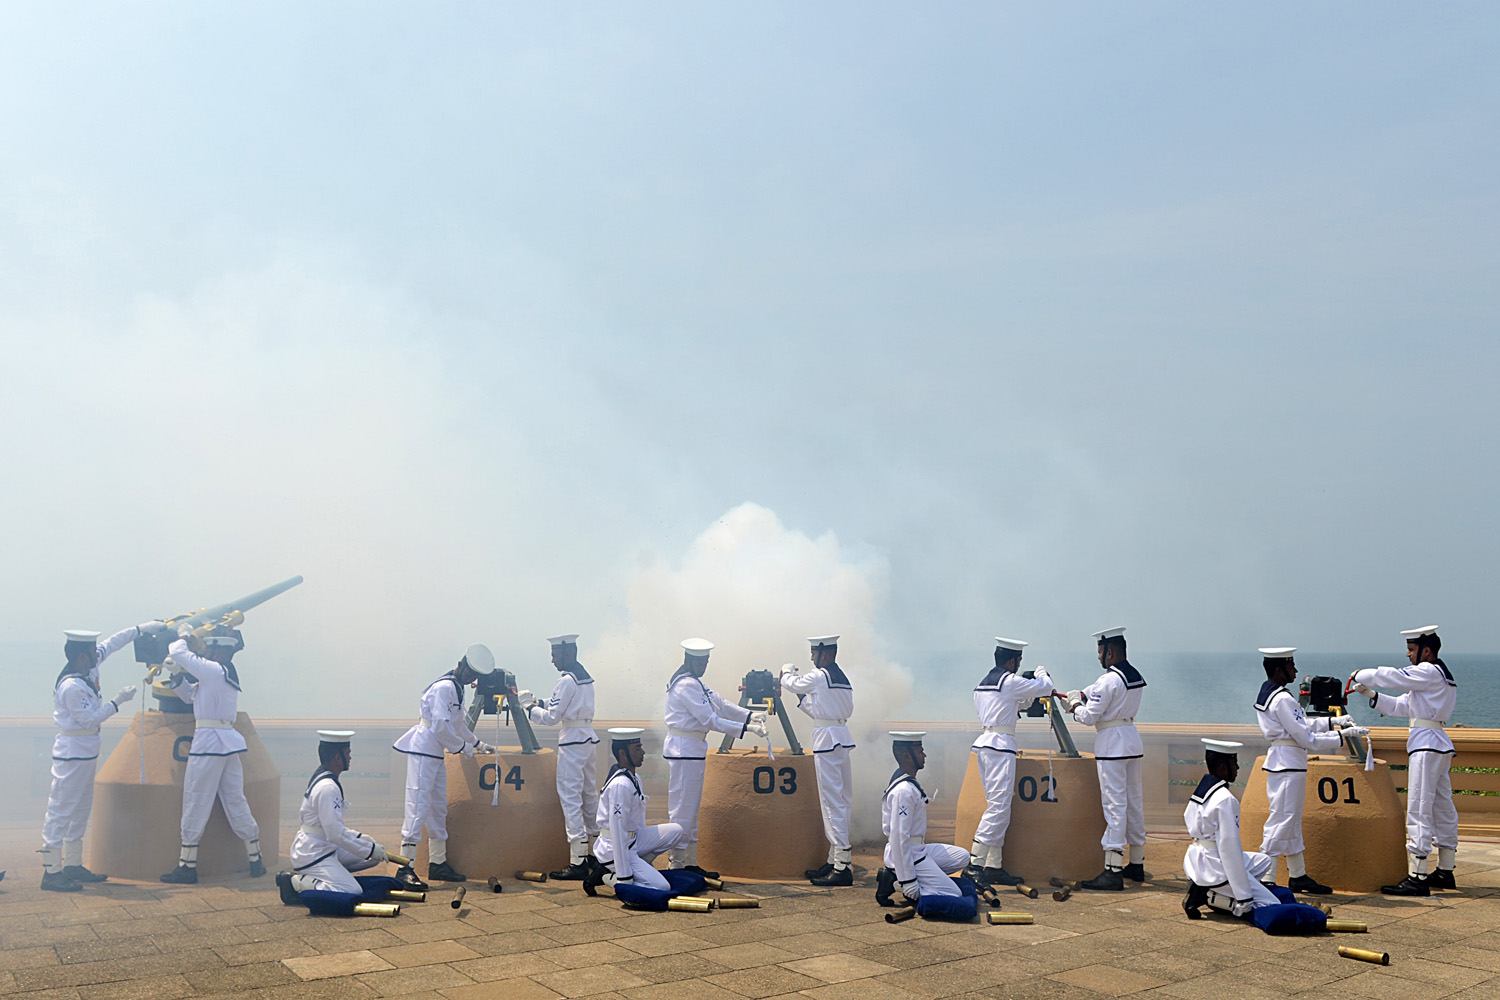 Feb. 4, 2013. Sri Lankan Navy personnel fire a 21-gun salute on the capital's seafront Galle Face promenade to mark the island nation's 65th Independence Day in Colombo.